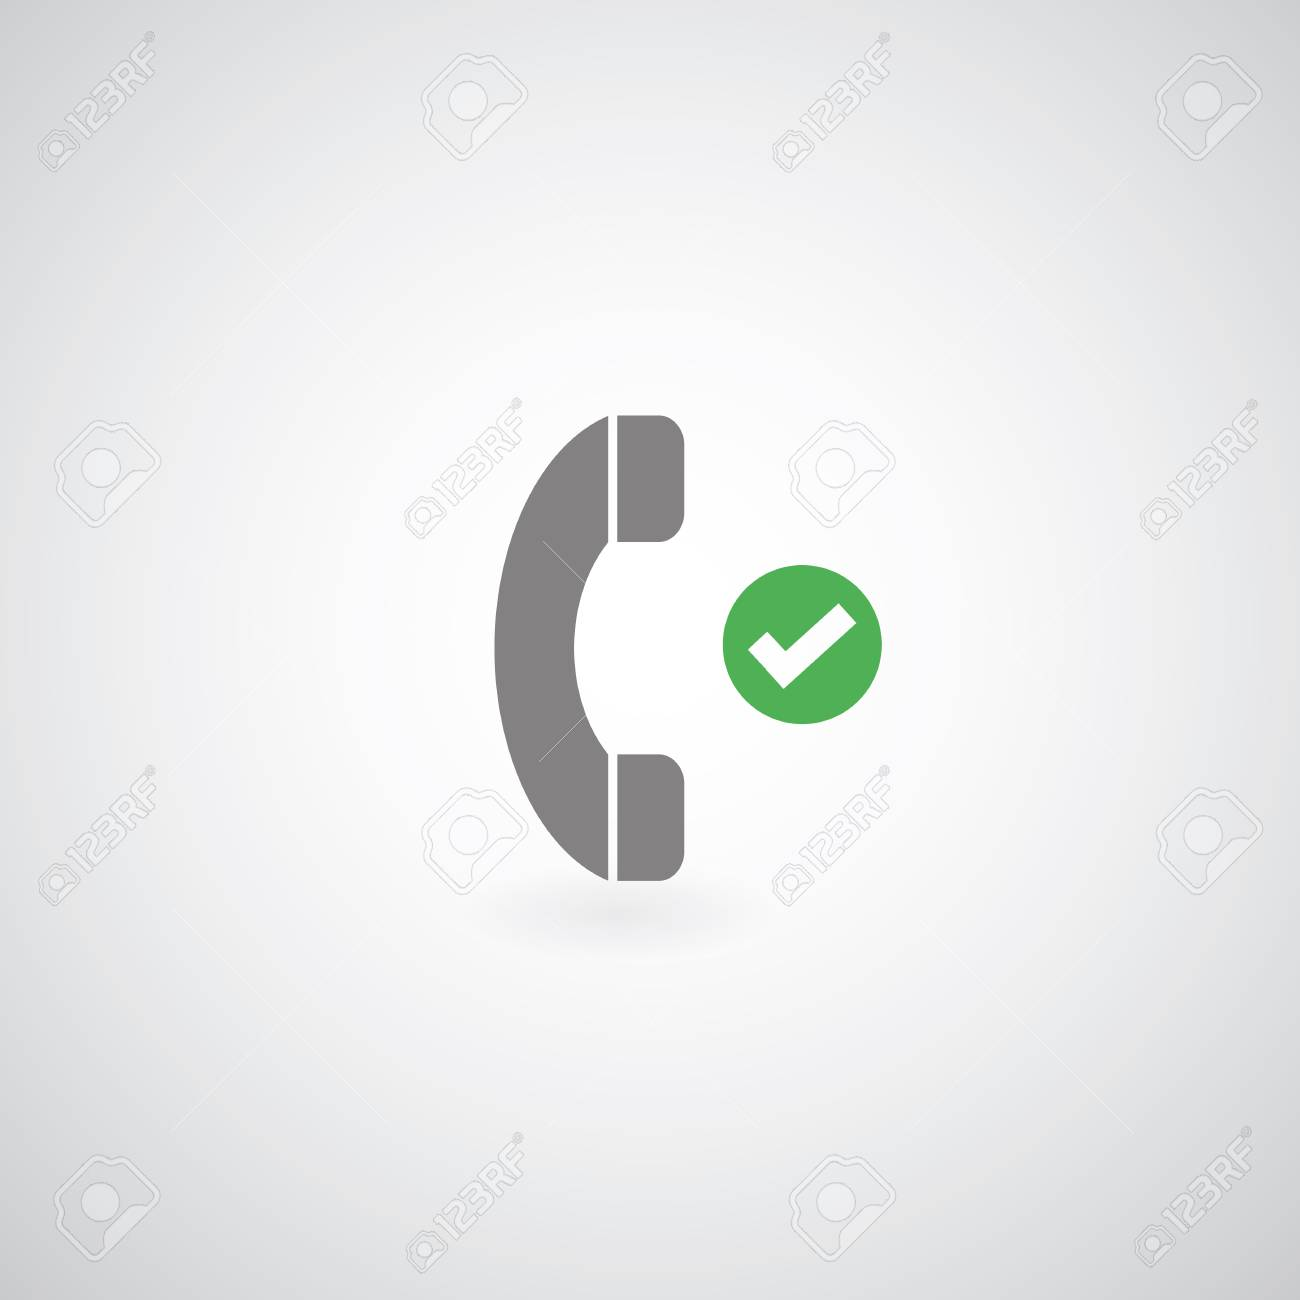 phone symbol on gray background Stock Vector - 24474528